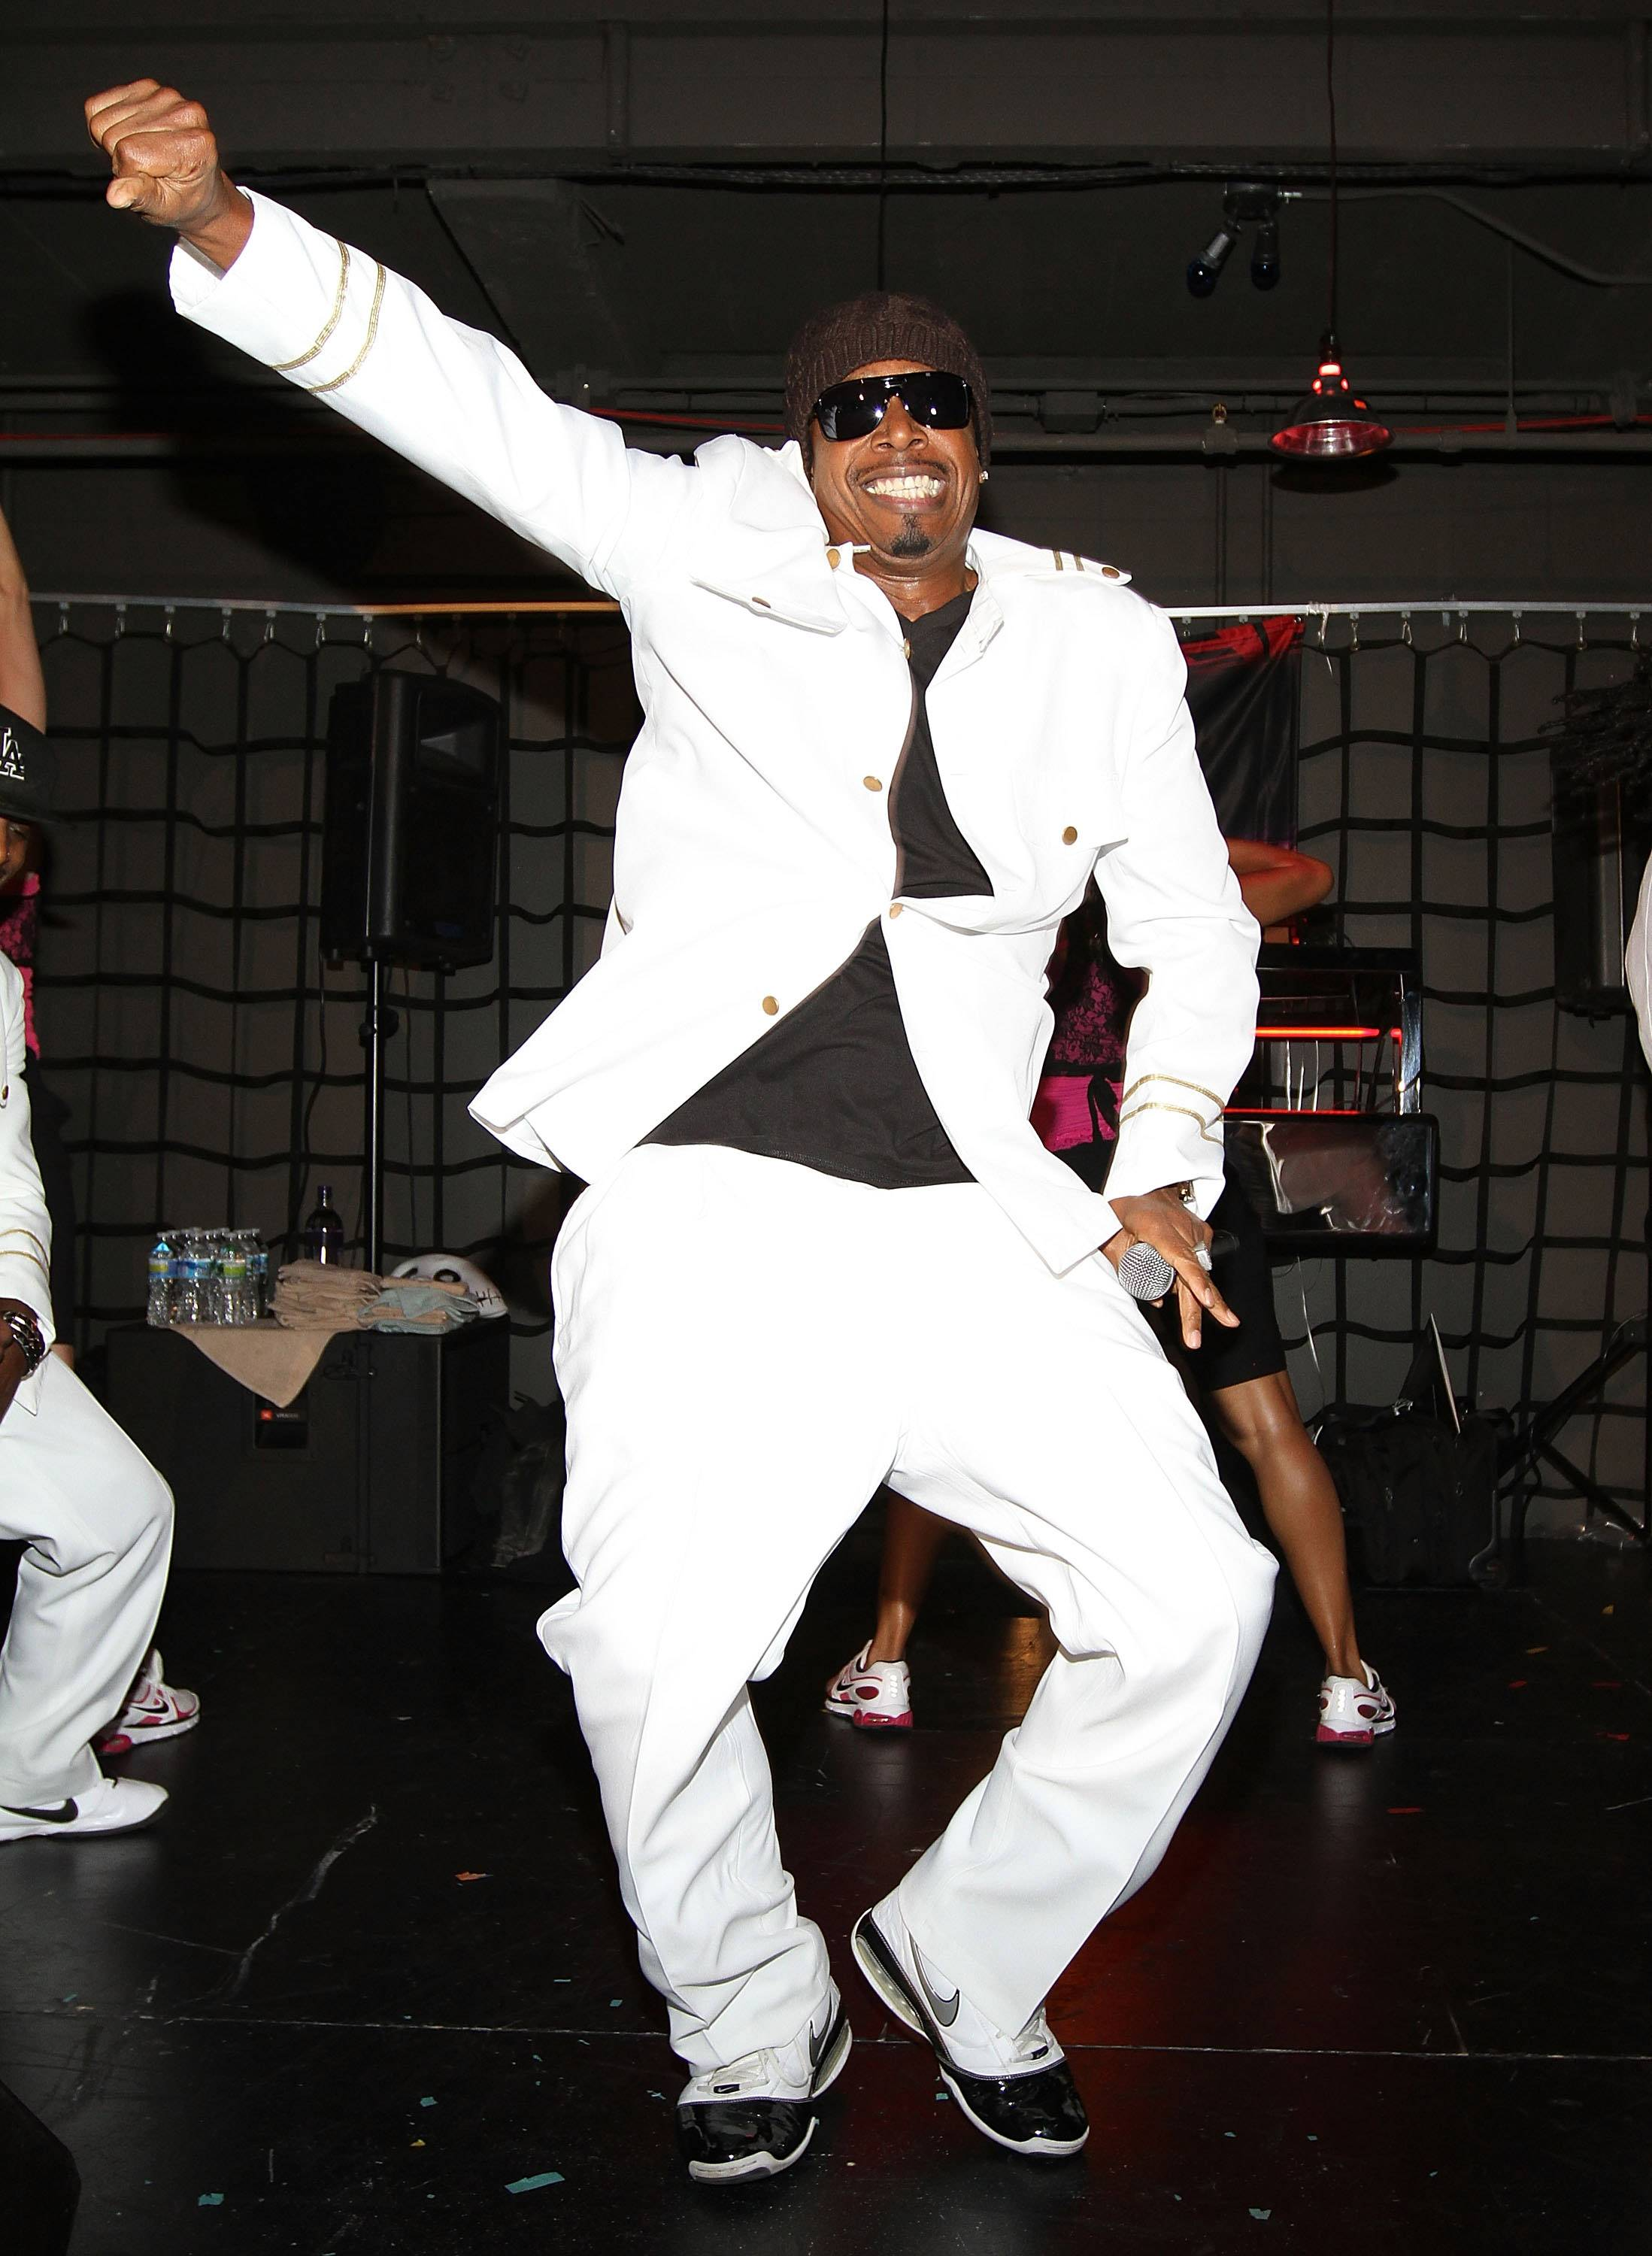 MC Hammer performs at Yoni & Josh's Halloween Celebration presented by SVEDKA VODKA at Good Units on October 28, 2011 in New York City.